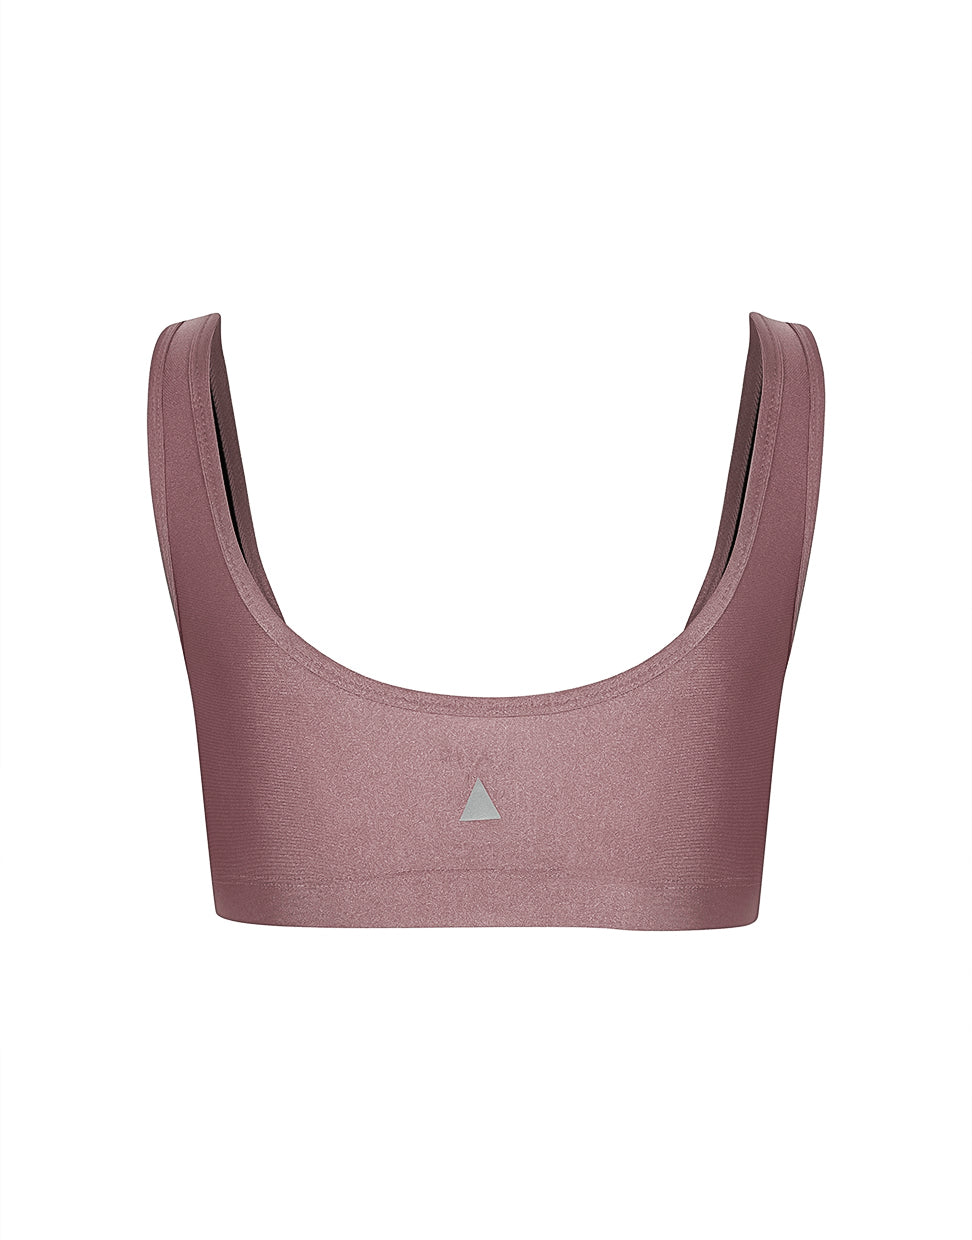 TOP BASIC ALÇA COLORS -ROSA CLARO